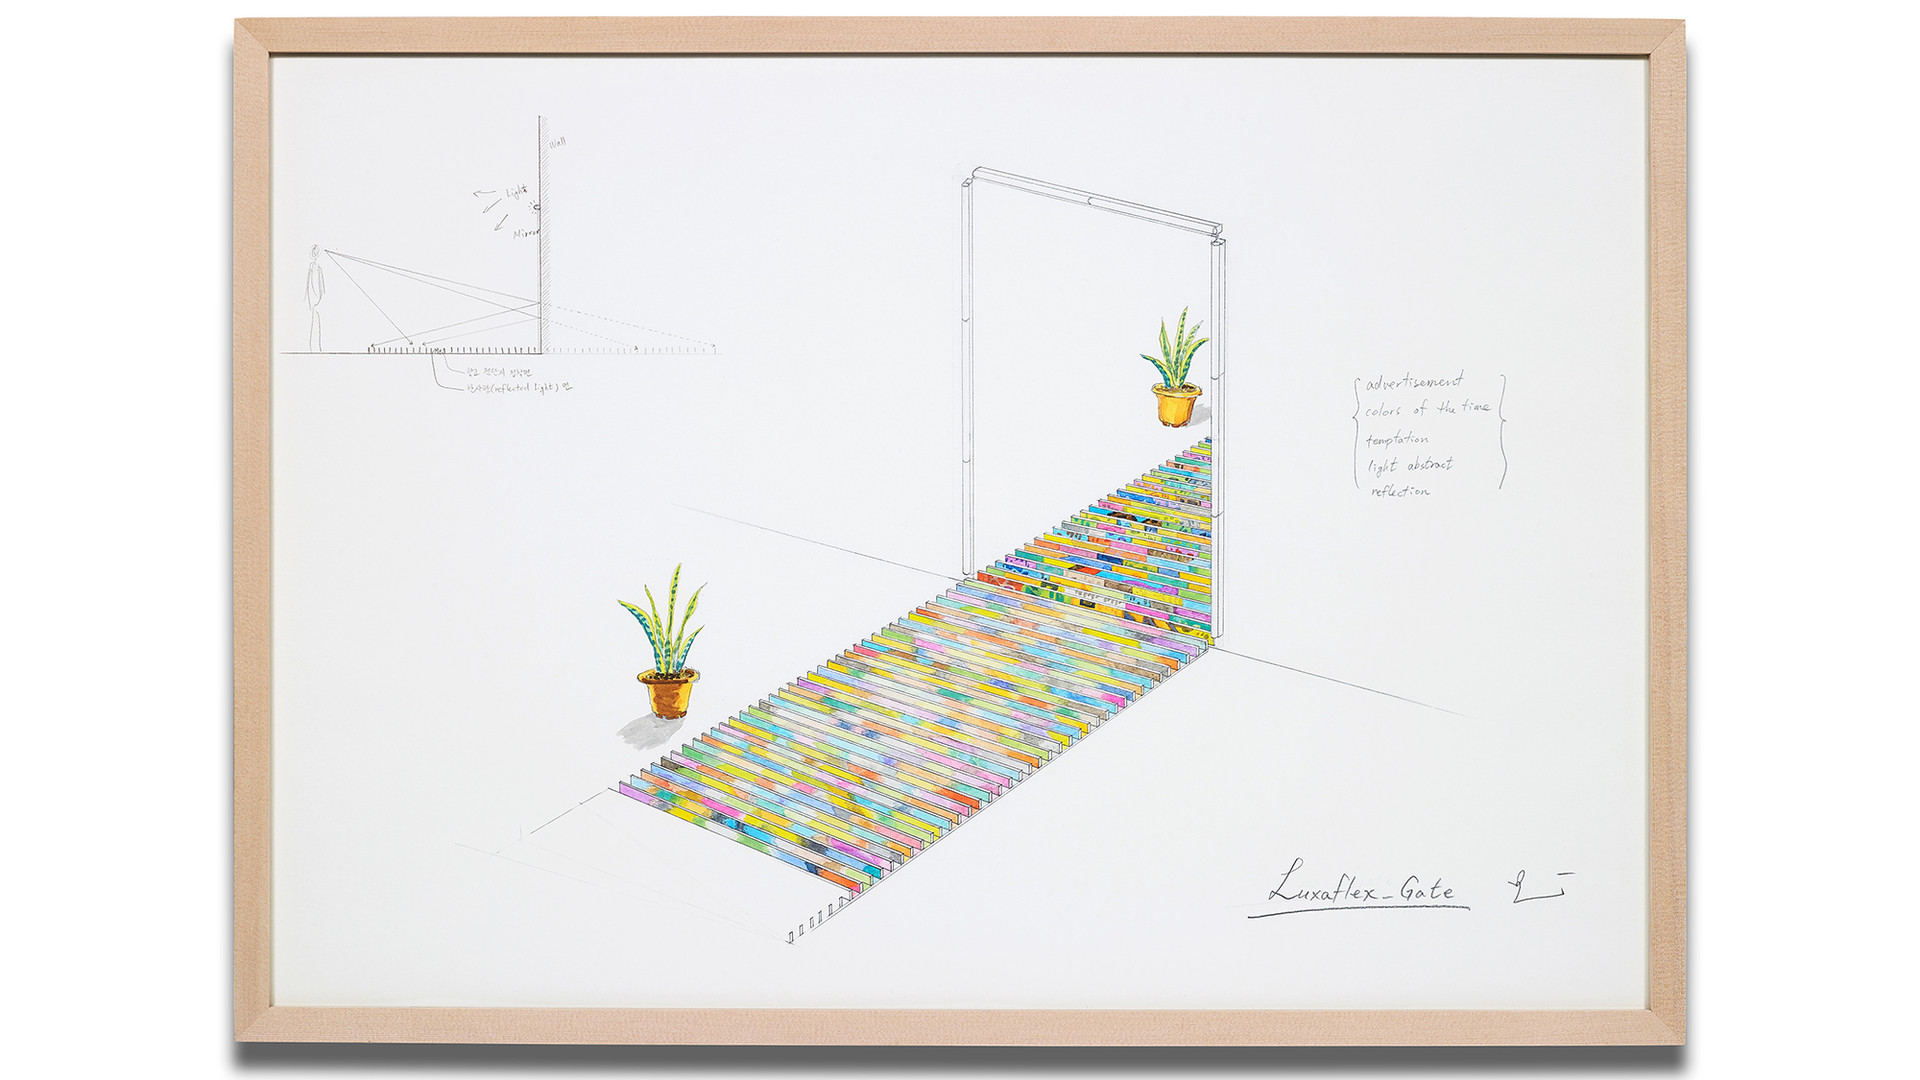 Changwon Lee, Luxaflex_Gate, 2017, pencil and watercolor on paper, 56.5x80cm